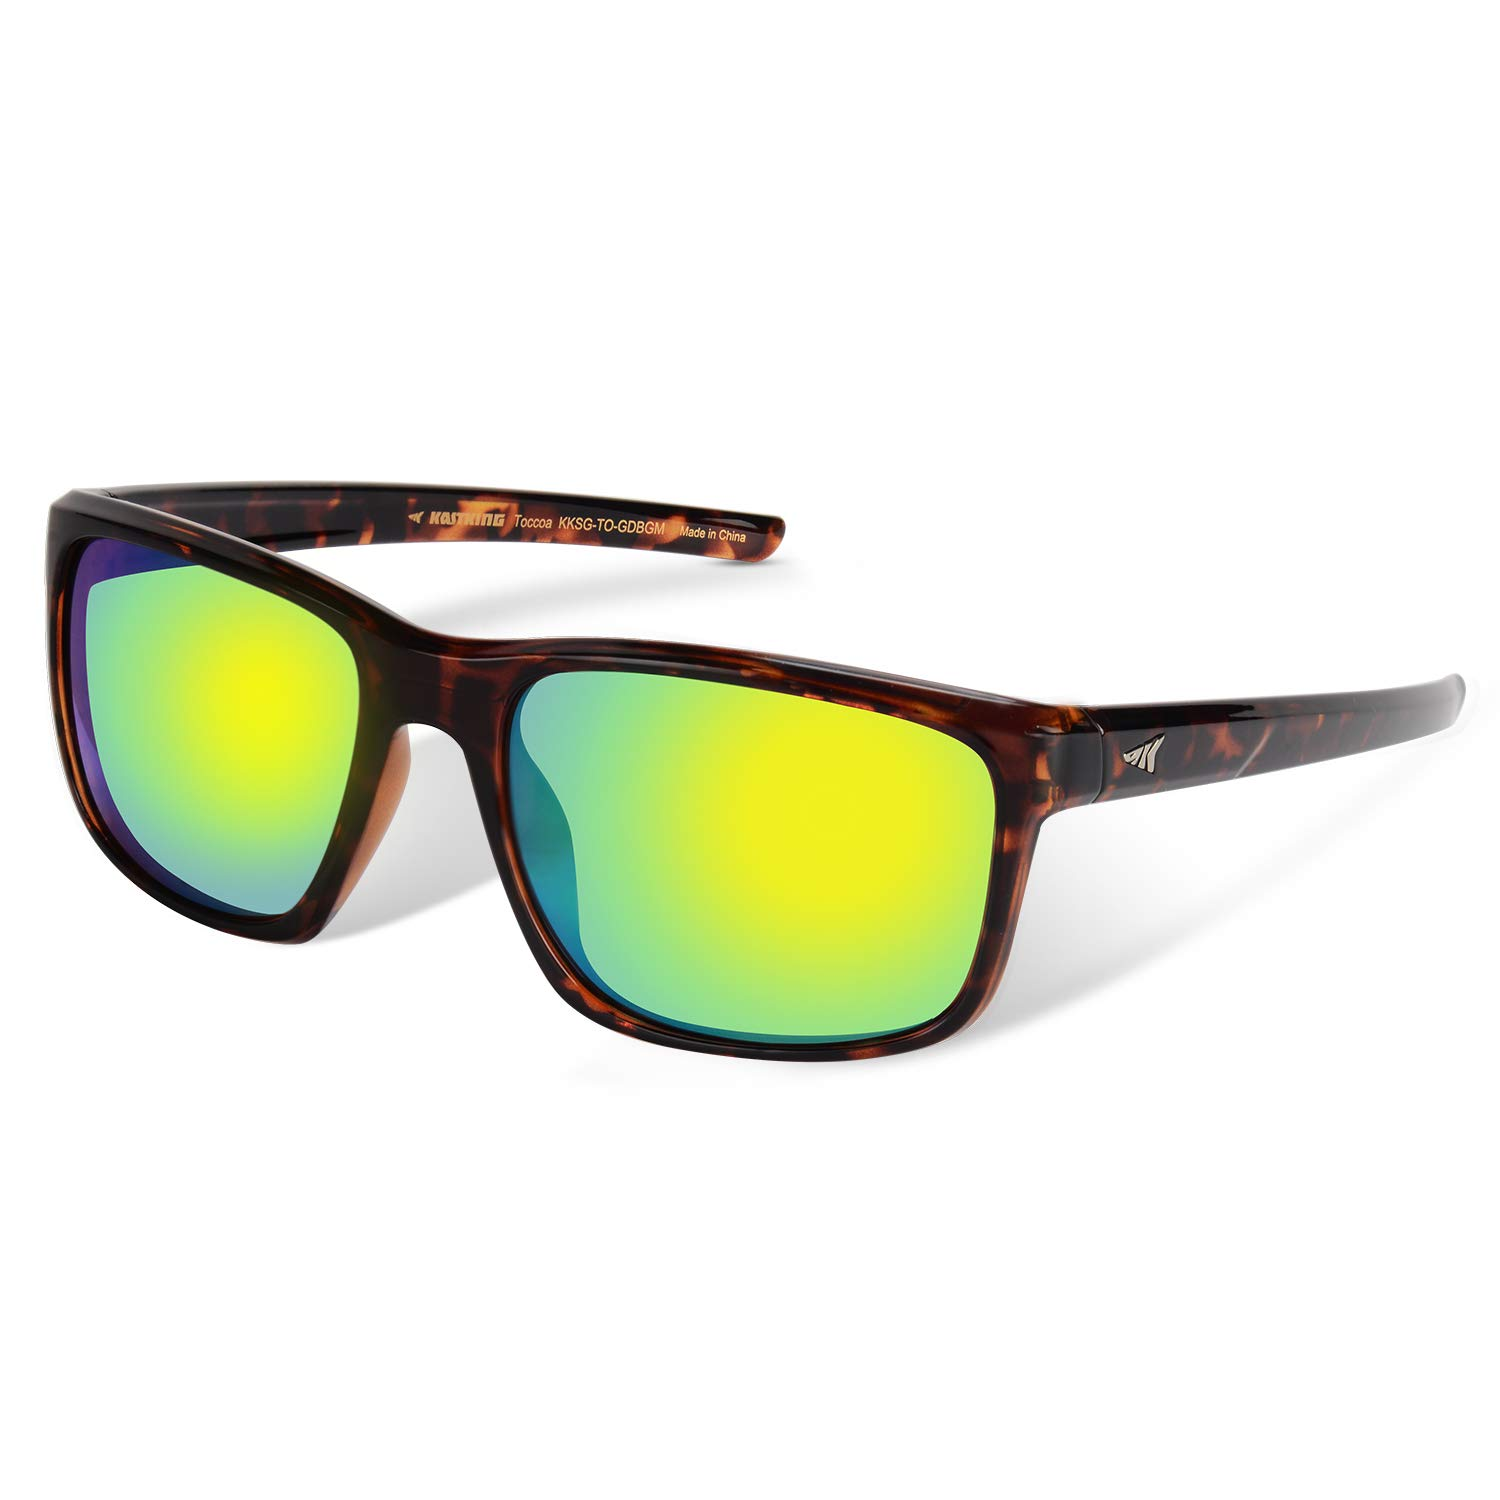 KastKing Polarized Sunglasses Driving Protection